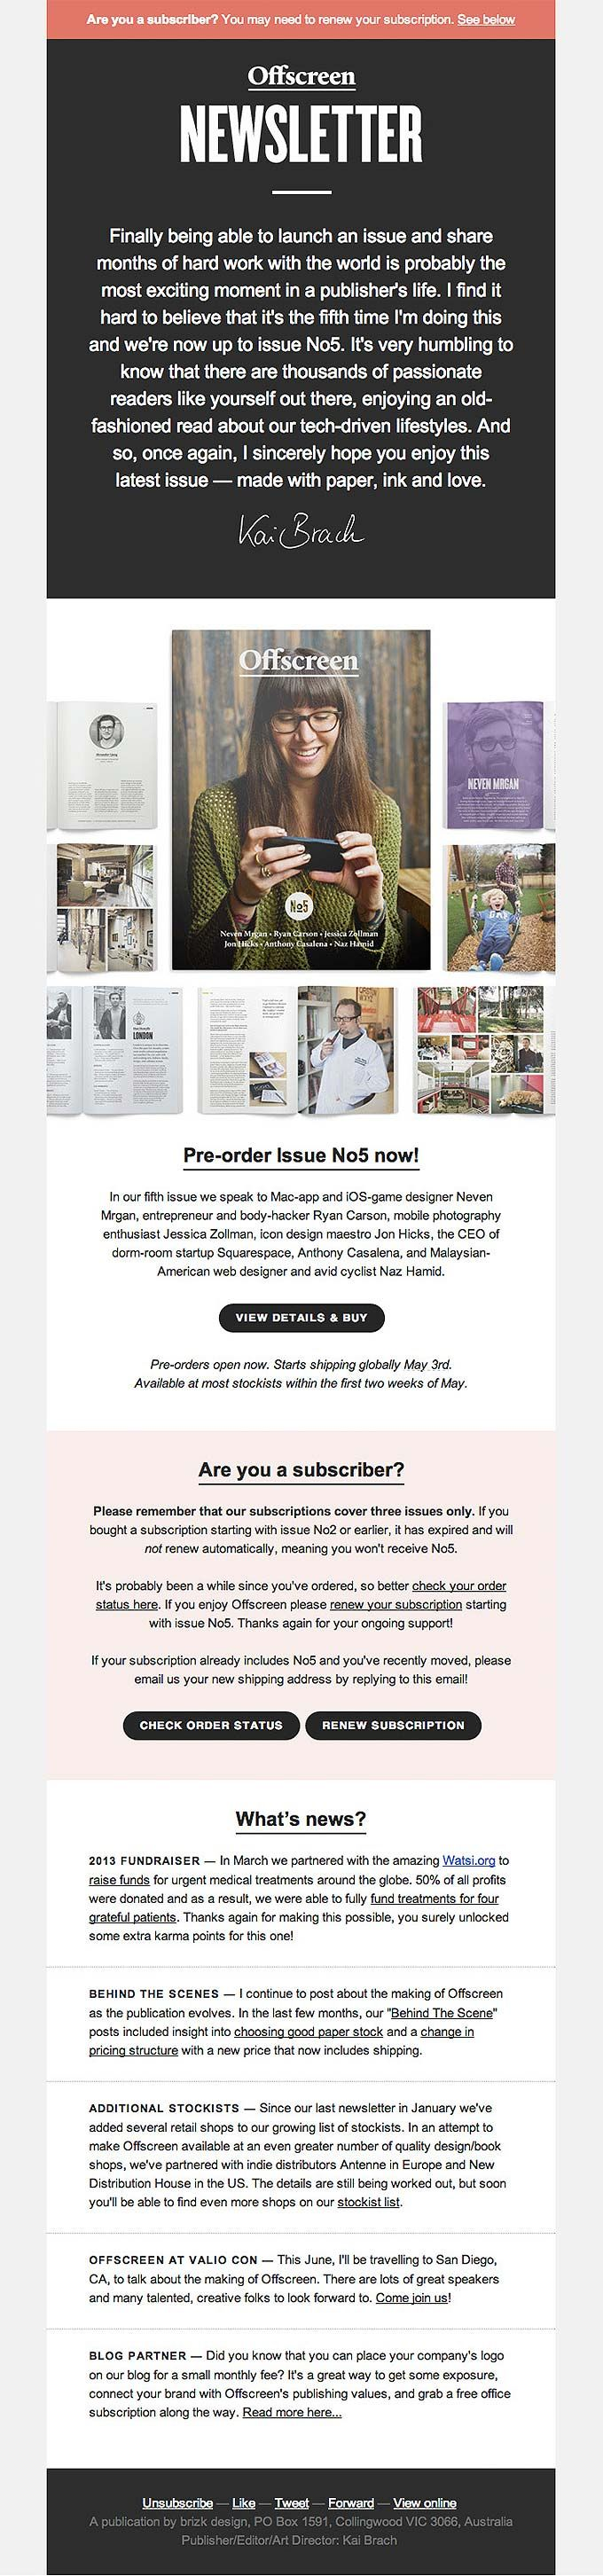 18 best Email Templates images on Pinterest | Email templates, Email ...